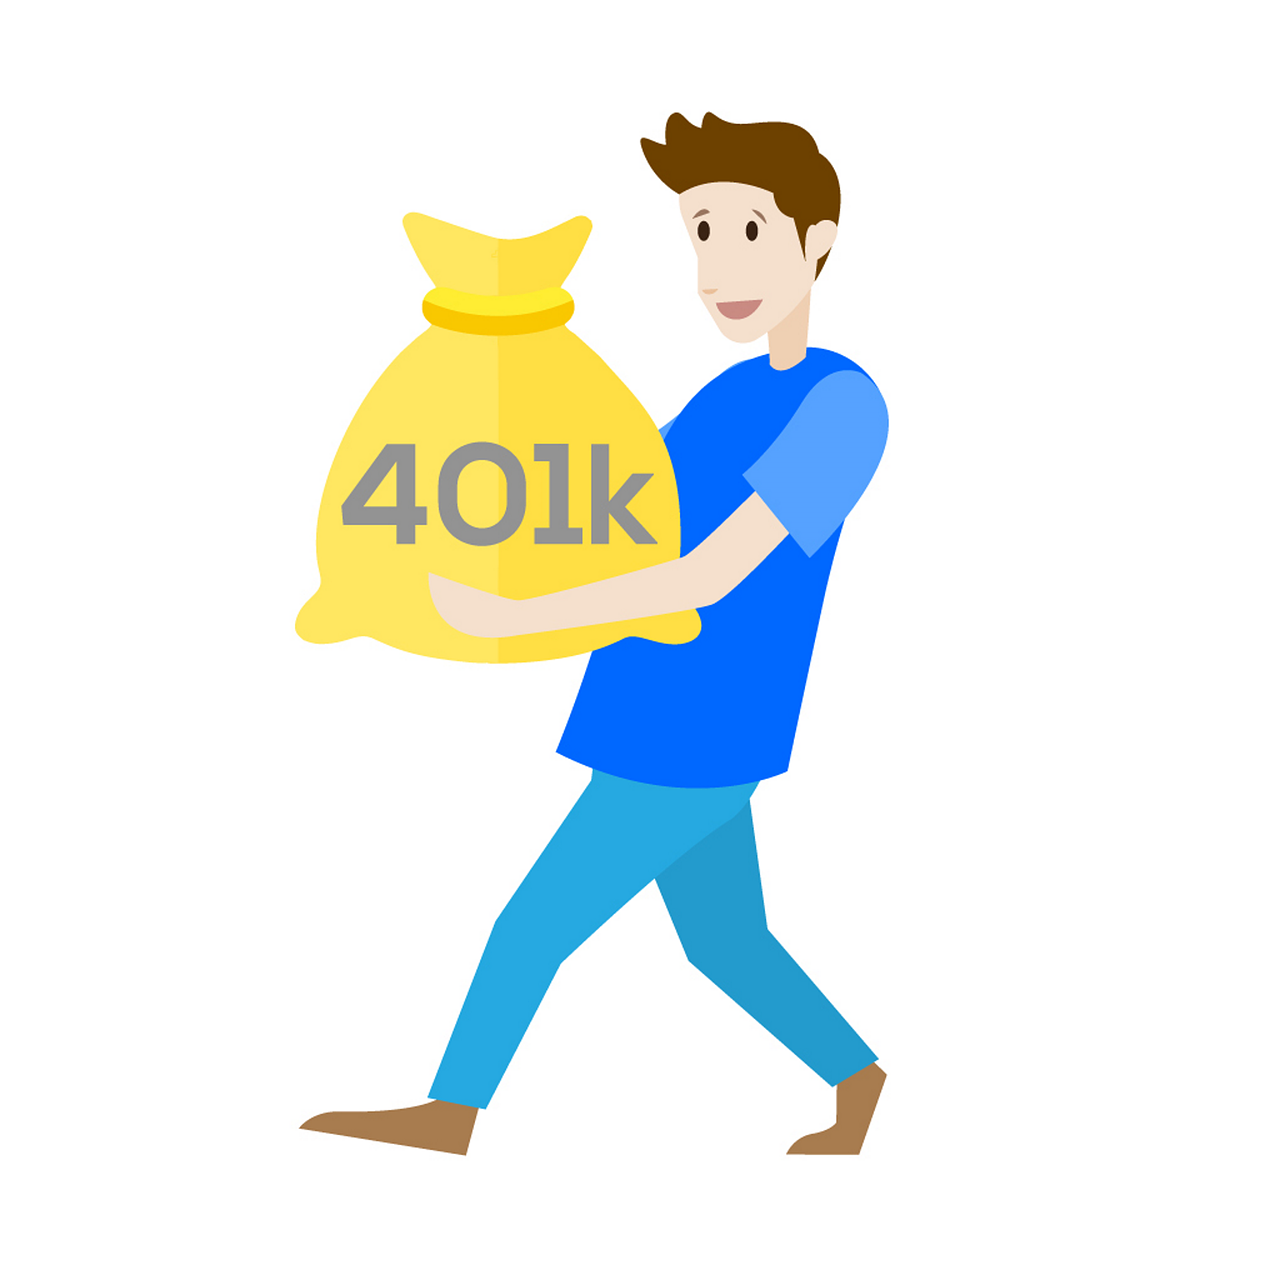 401K Retirement Fund